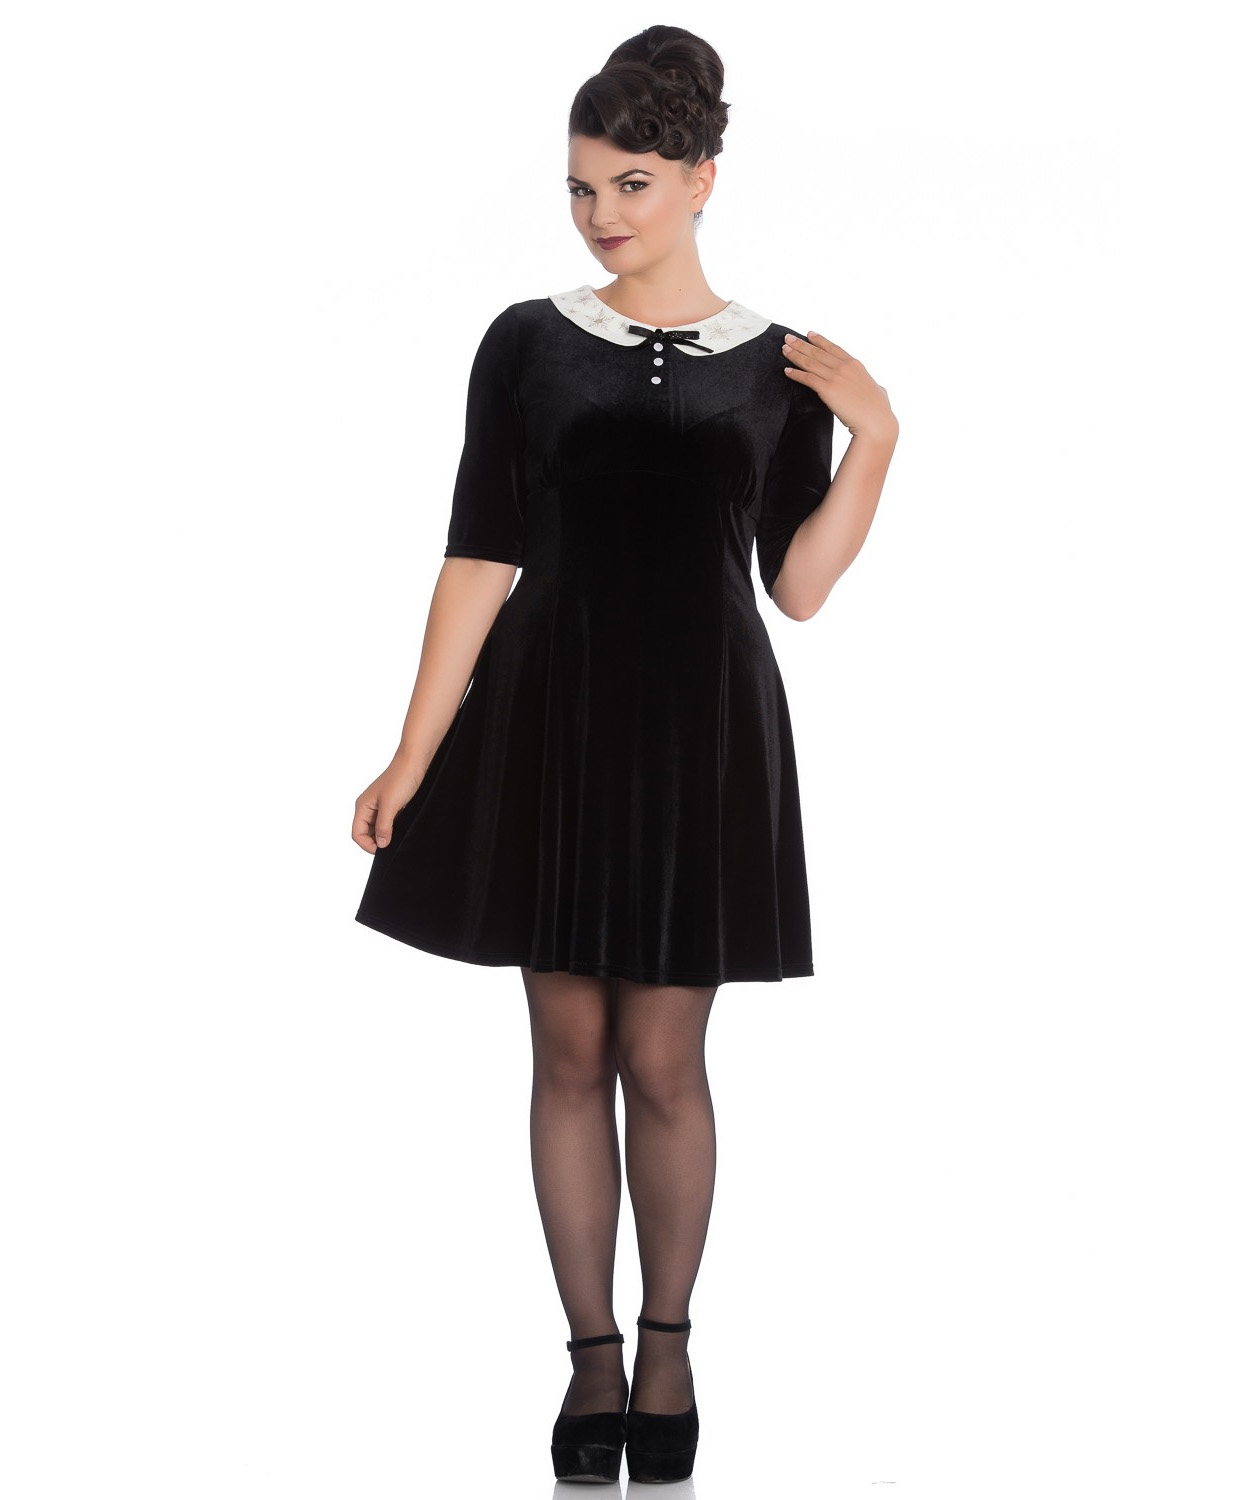 Hell-Bunny-Mini-Skater-Dress-Festive-Christmas-SNOWY-Black-Snowflakes-All-Sizes thumbnail 27